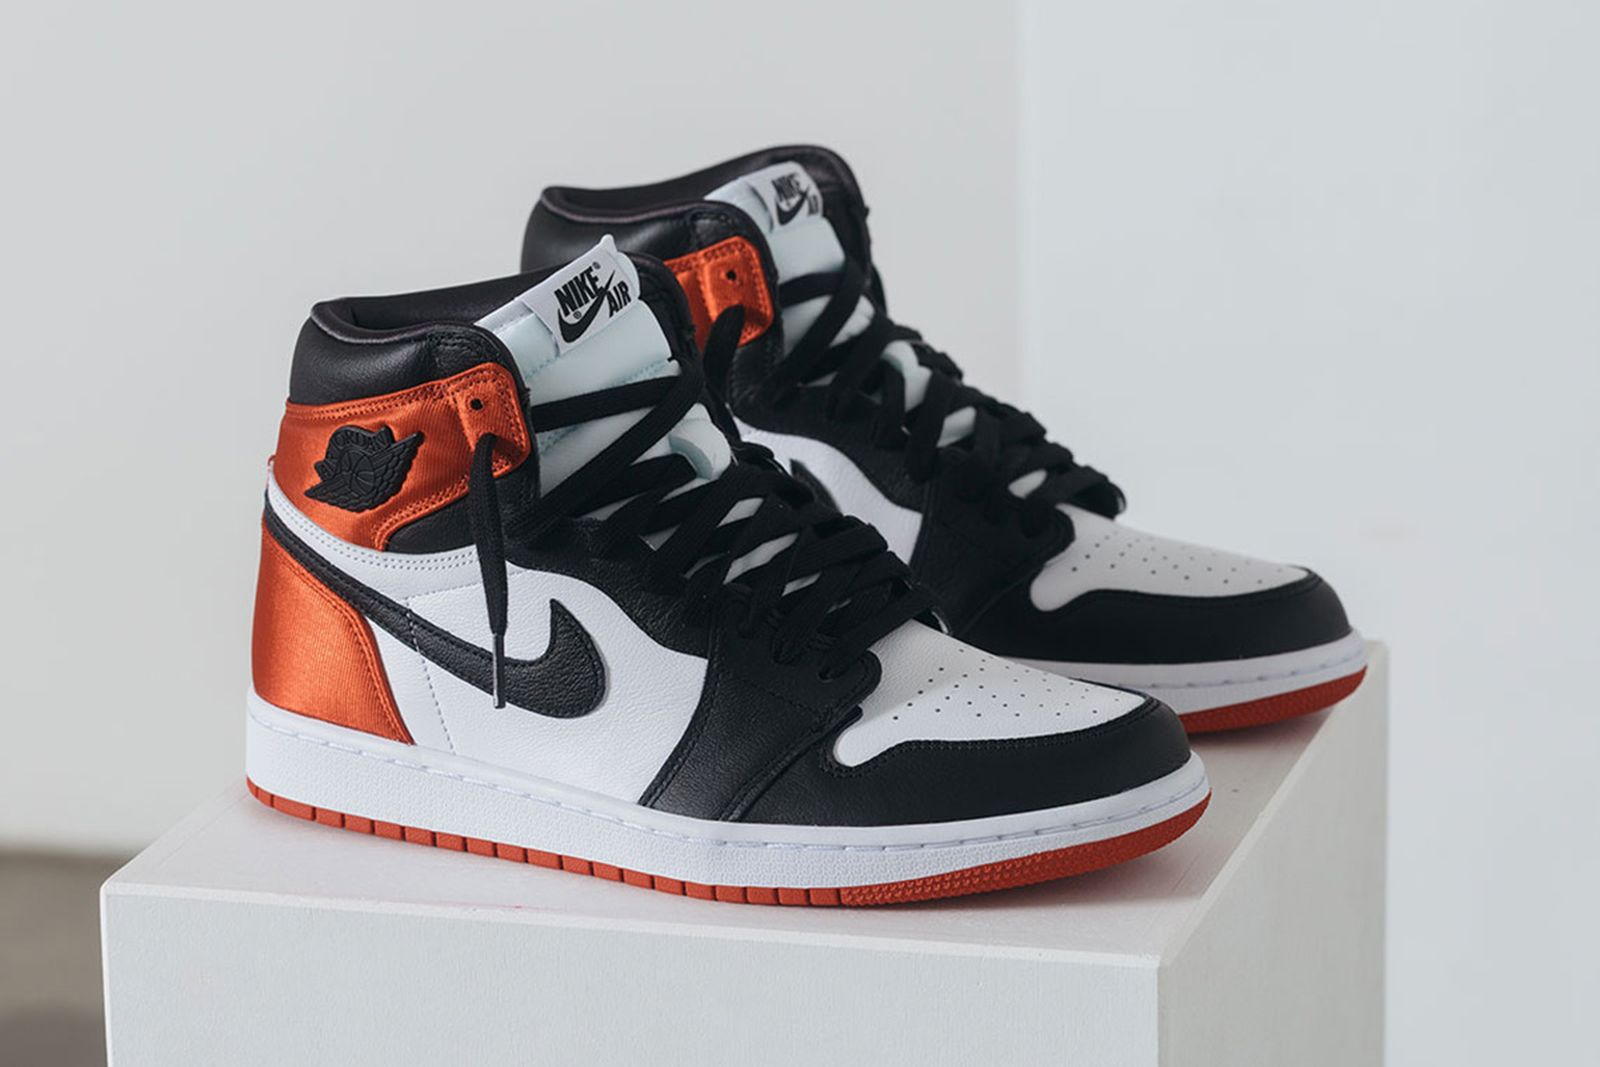 nike air jordan 1 satin black toe release date price jordan brand